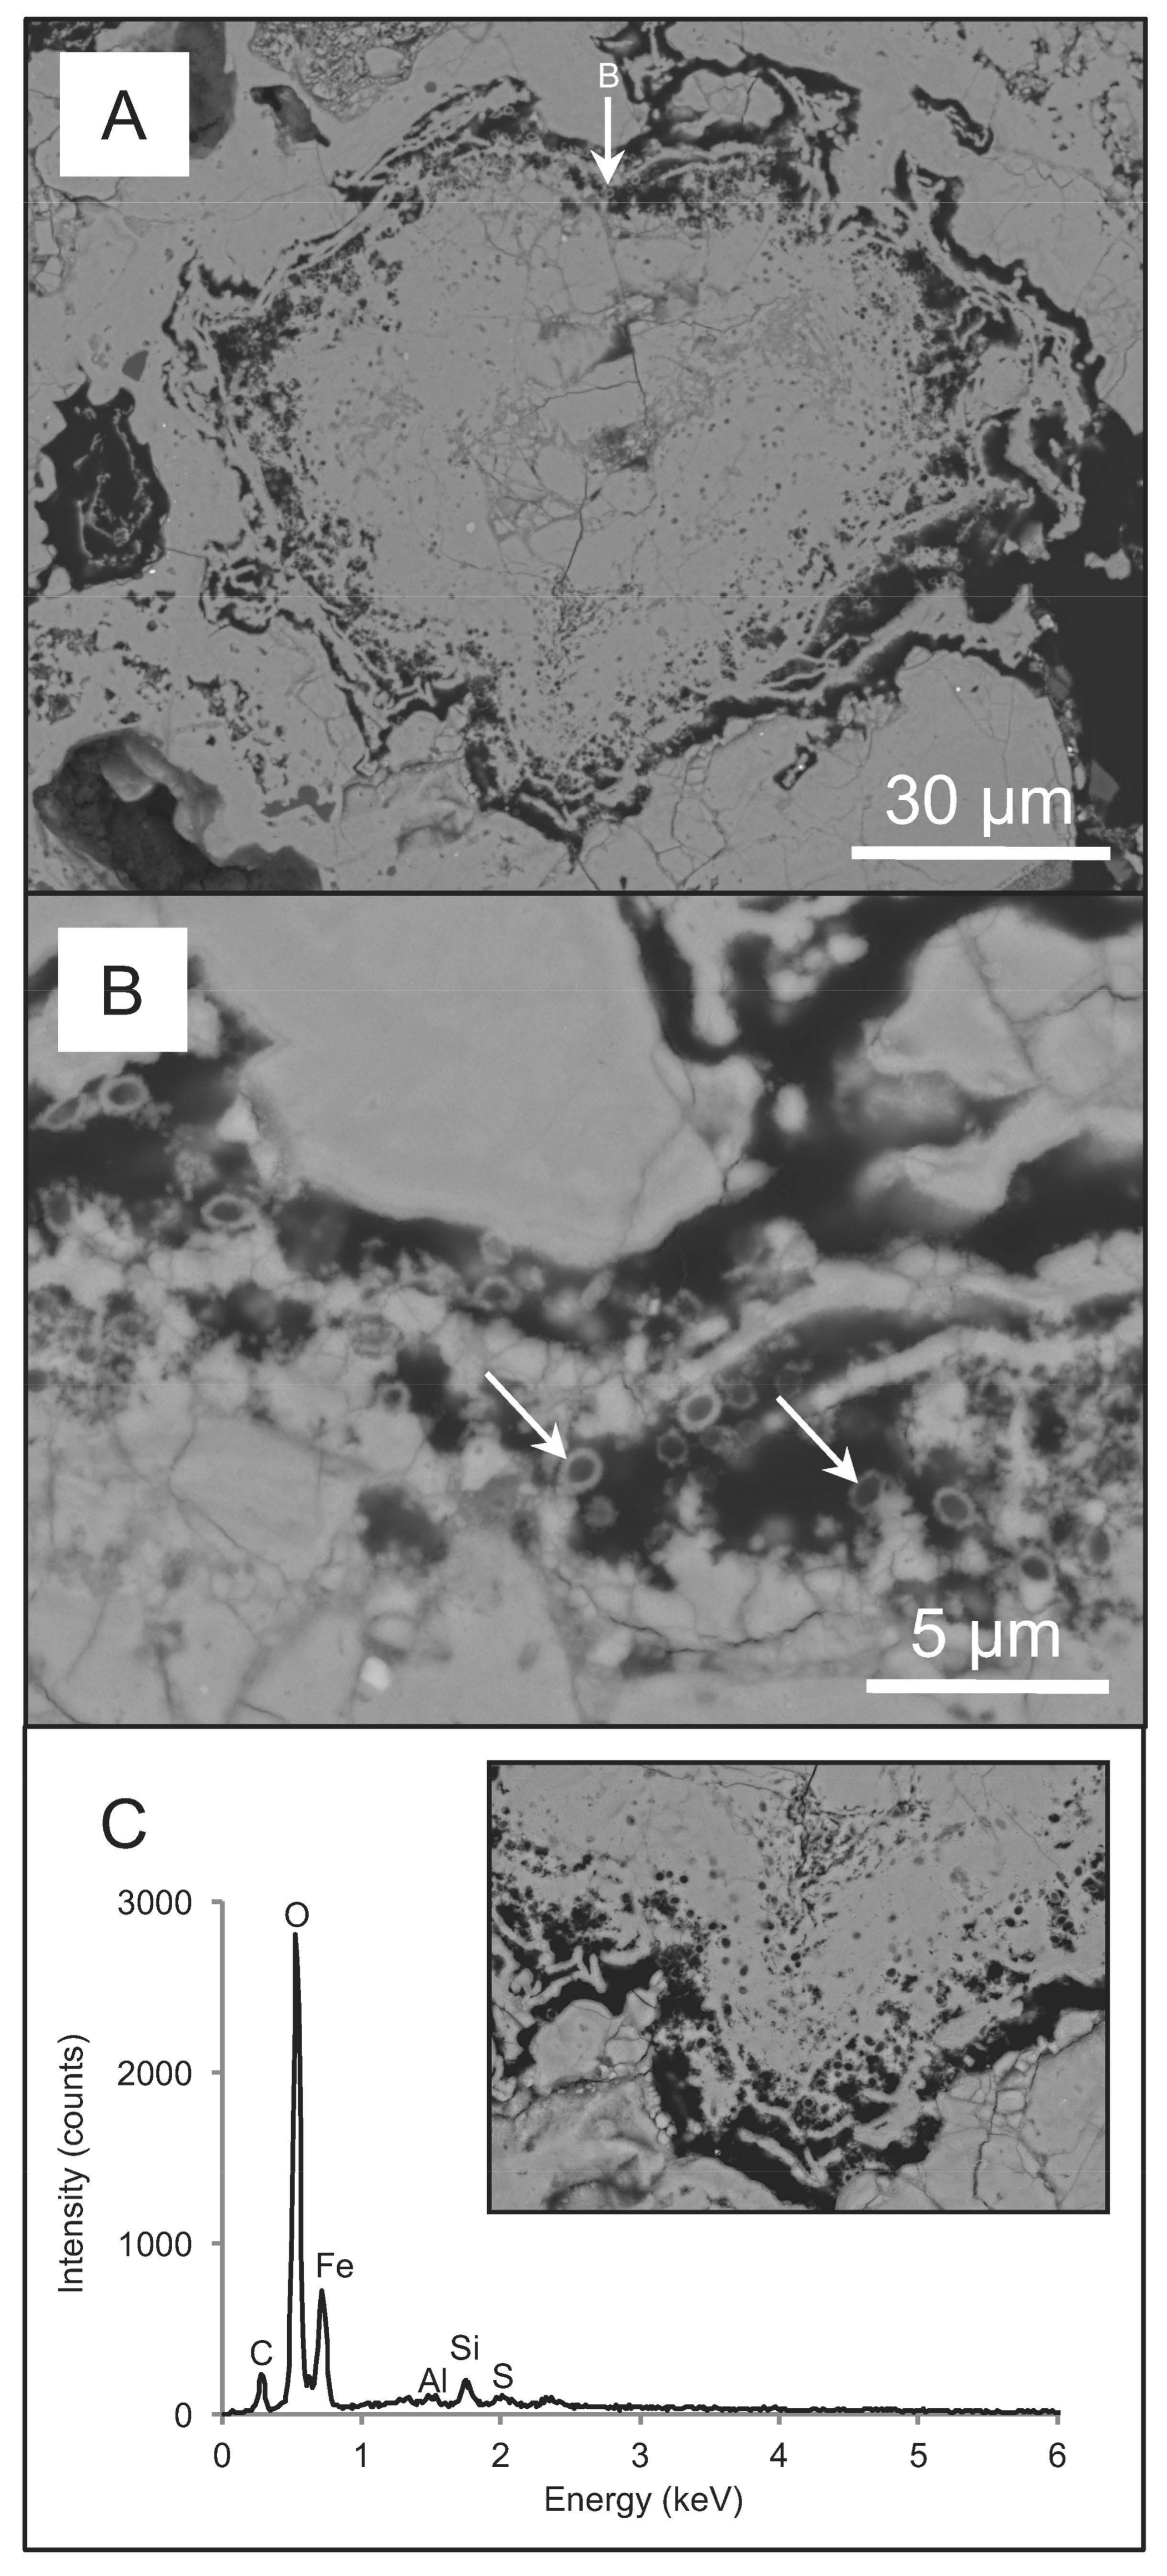 Minerals | Free Full-Text | Biogeochemical Cycling of Silver in ...